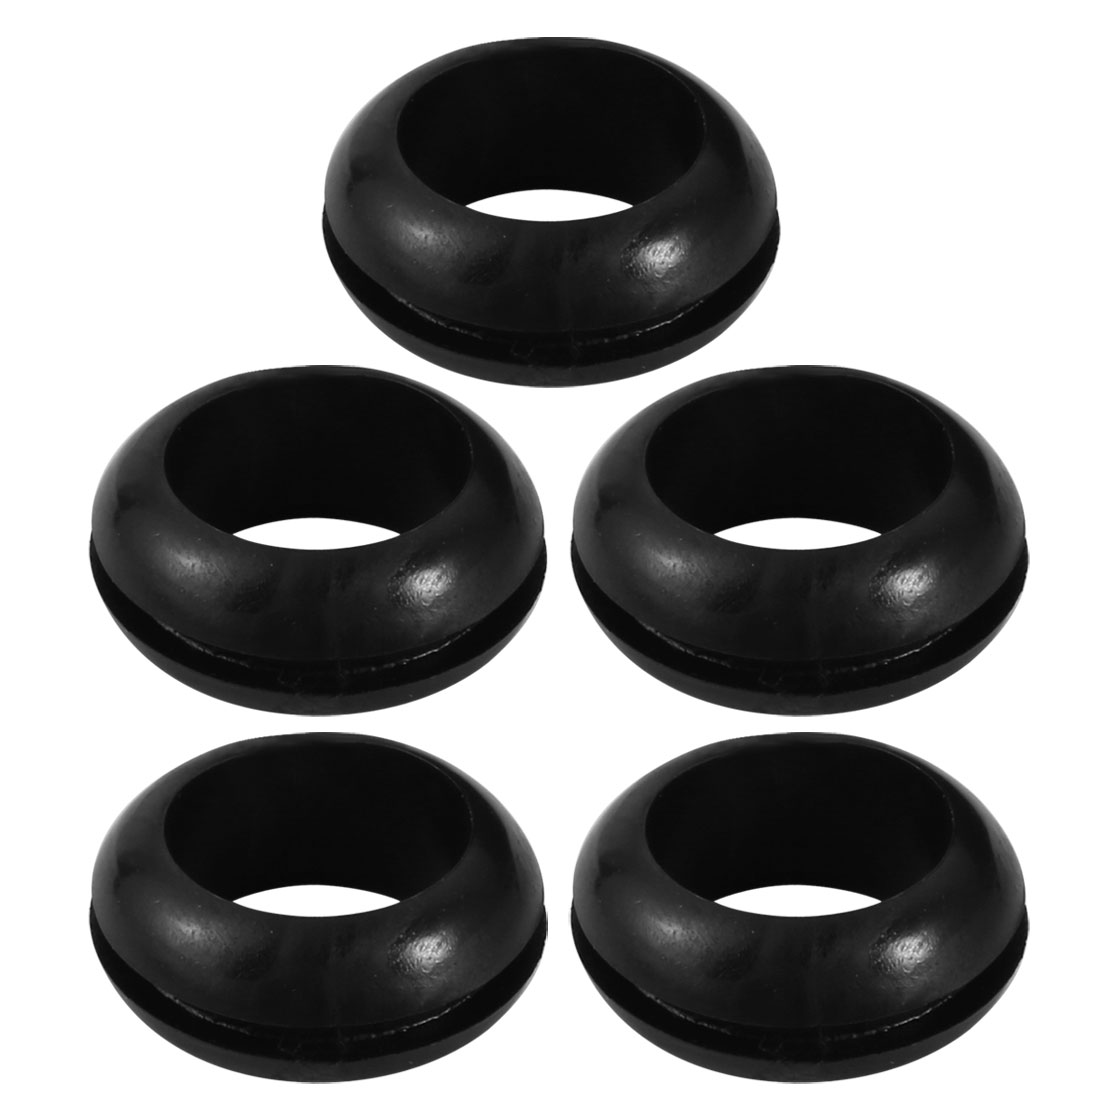 5pcs Wire Protective Grommets Black Rubber 18mm Double Sided Grommet